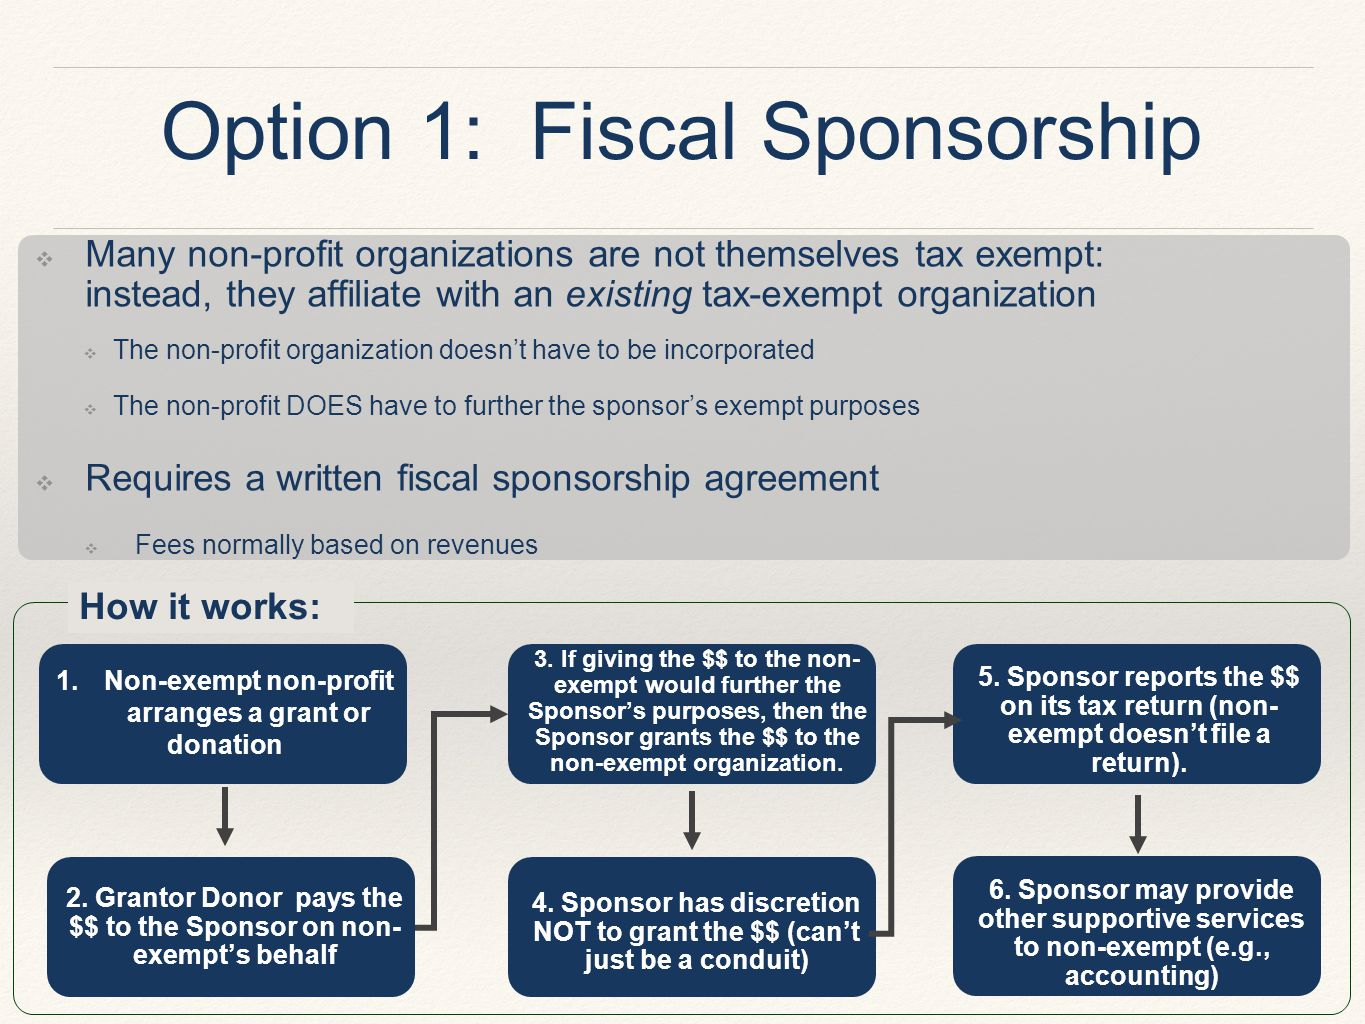 Option 1: Fiscal Sponsorship ❖ Many non-profit organizations are not themselves tax exempt: instead, they affiliate with an existing tax-exempt organization ❖ The non-profit organization doesn't have to be incorporated ❖ The non-profit DOES have to further the sponsor's exempt purposes ❖ Requires a written fiscal sponsorship agreement ❖ Fees normally based on revenues How it works: 1.Non-exempt non-profit arranges a grant or donation 2.